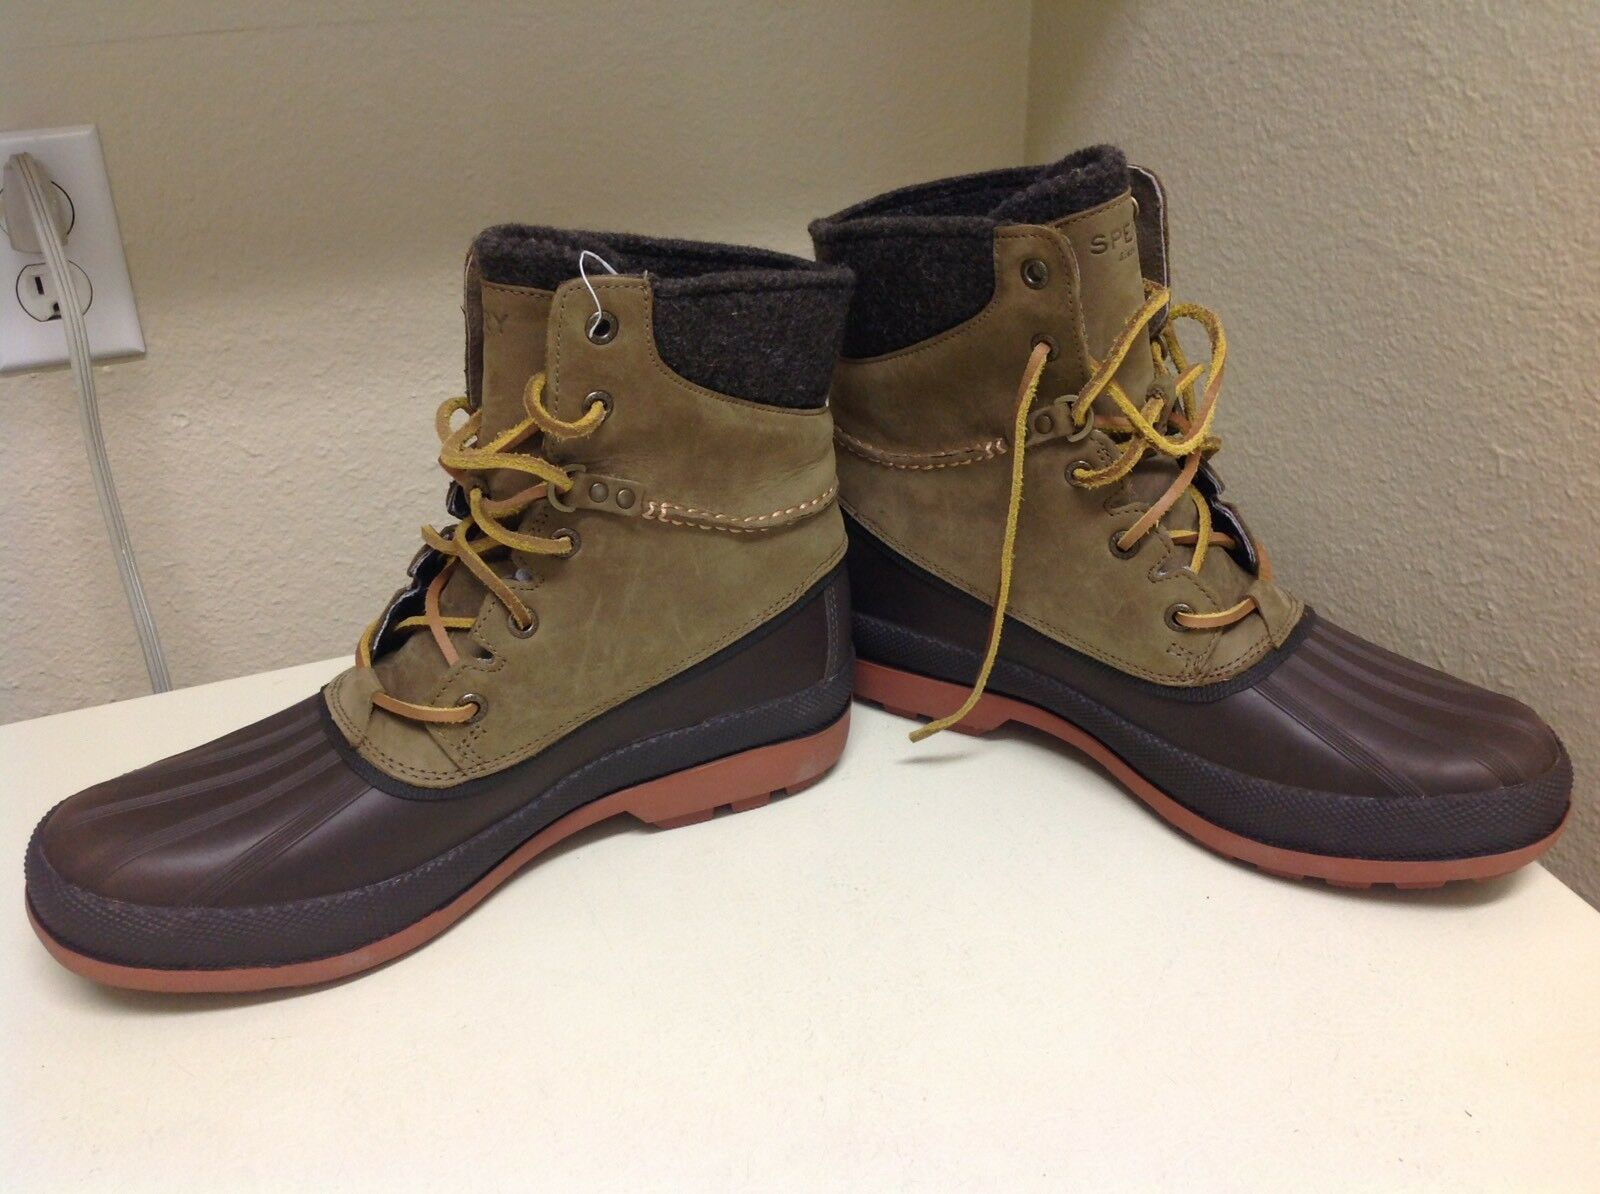 NEW Mens SPERRY TOP-SIDER DK Brown Leather COLD BAY Waterproof Boots shoes 9M